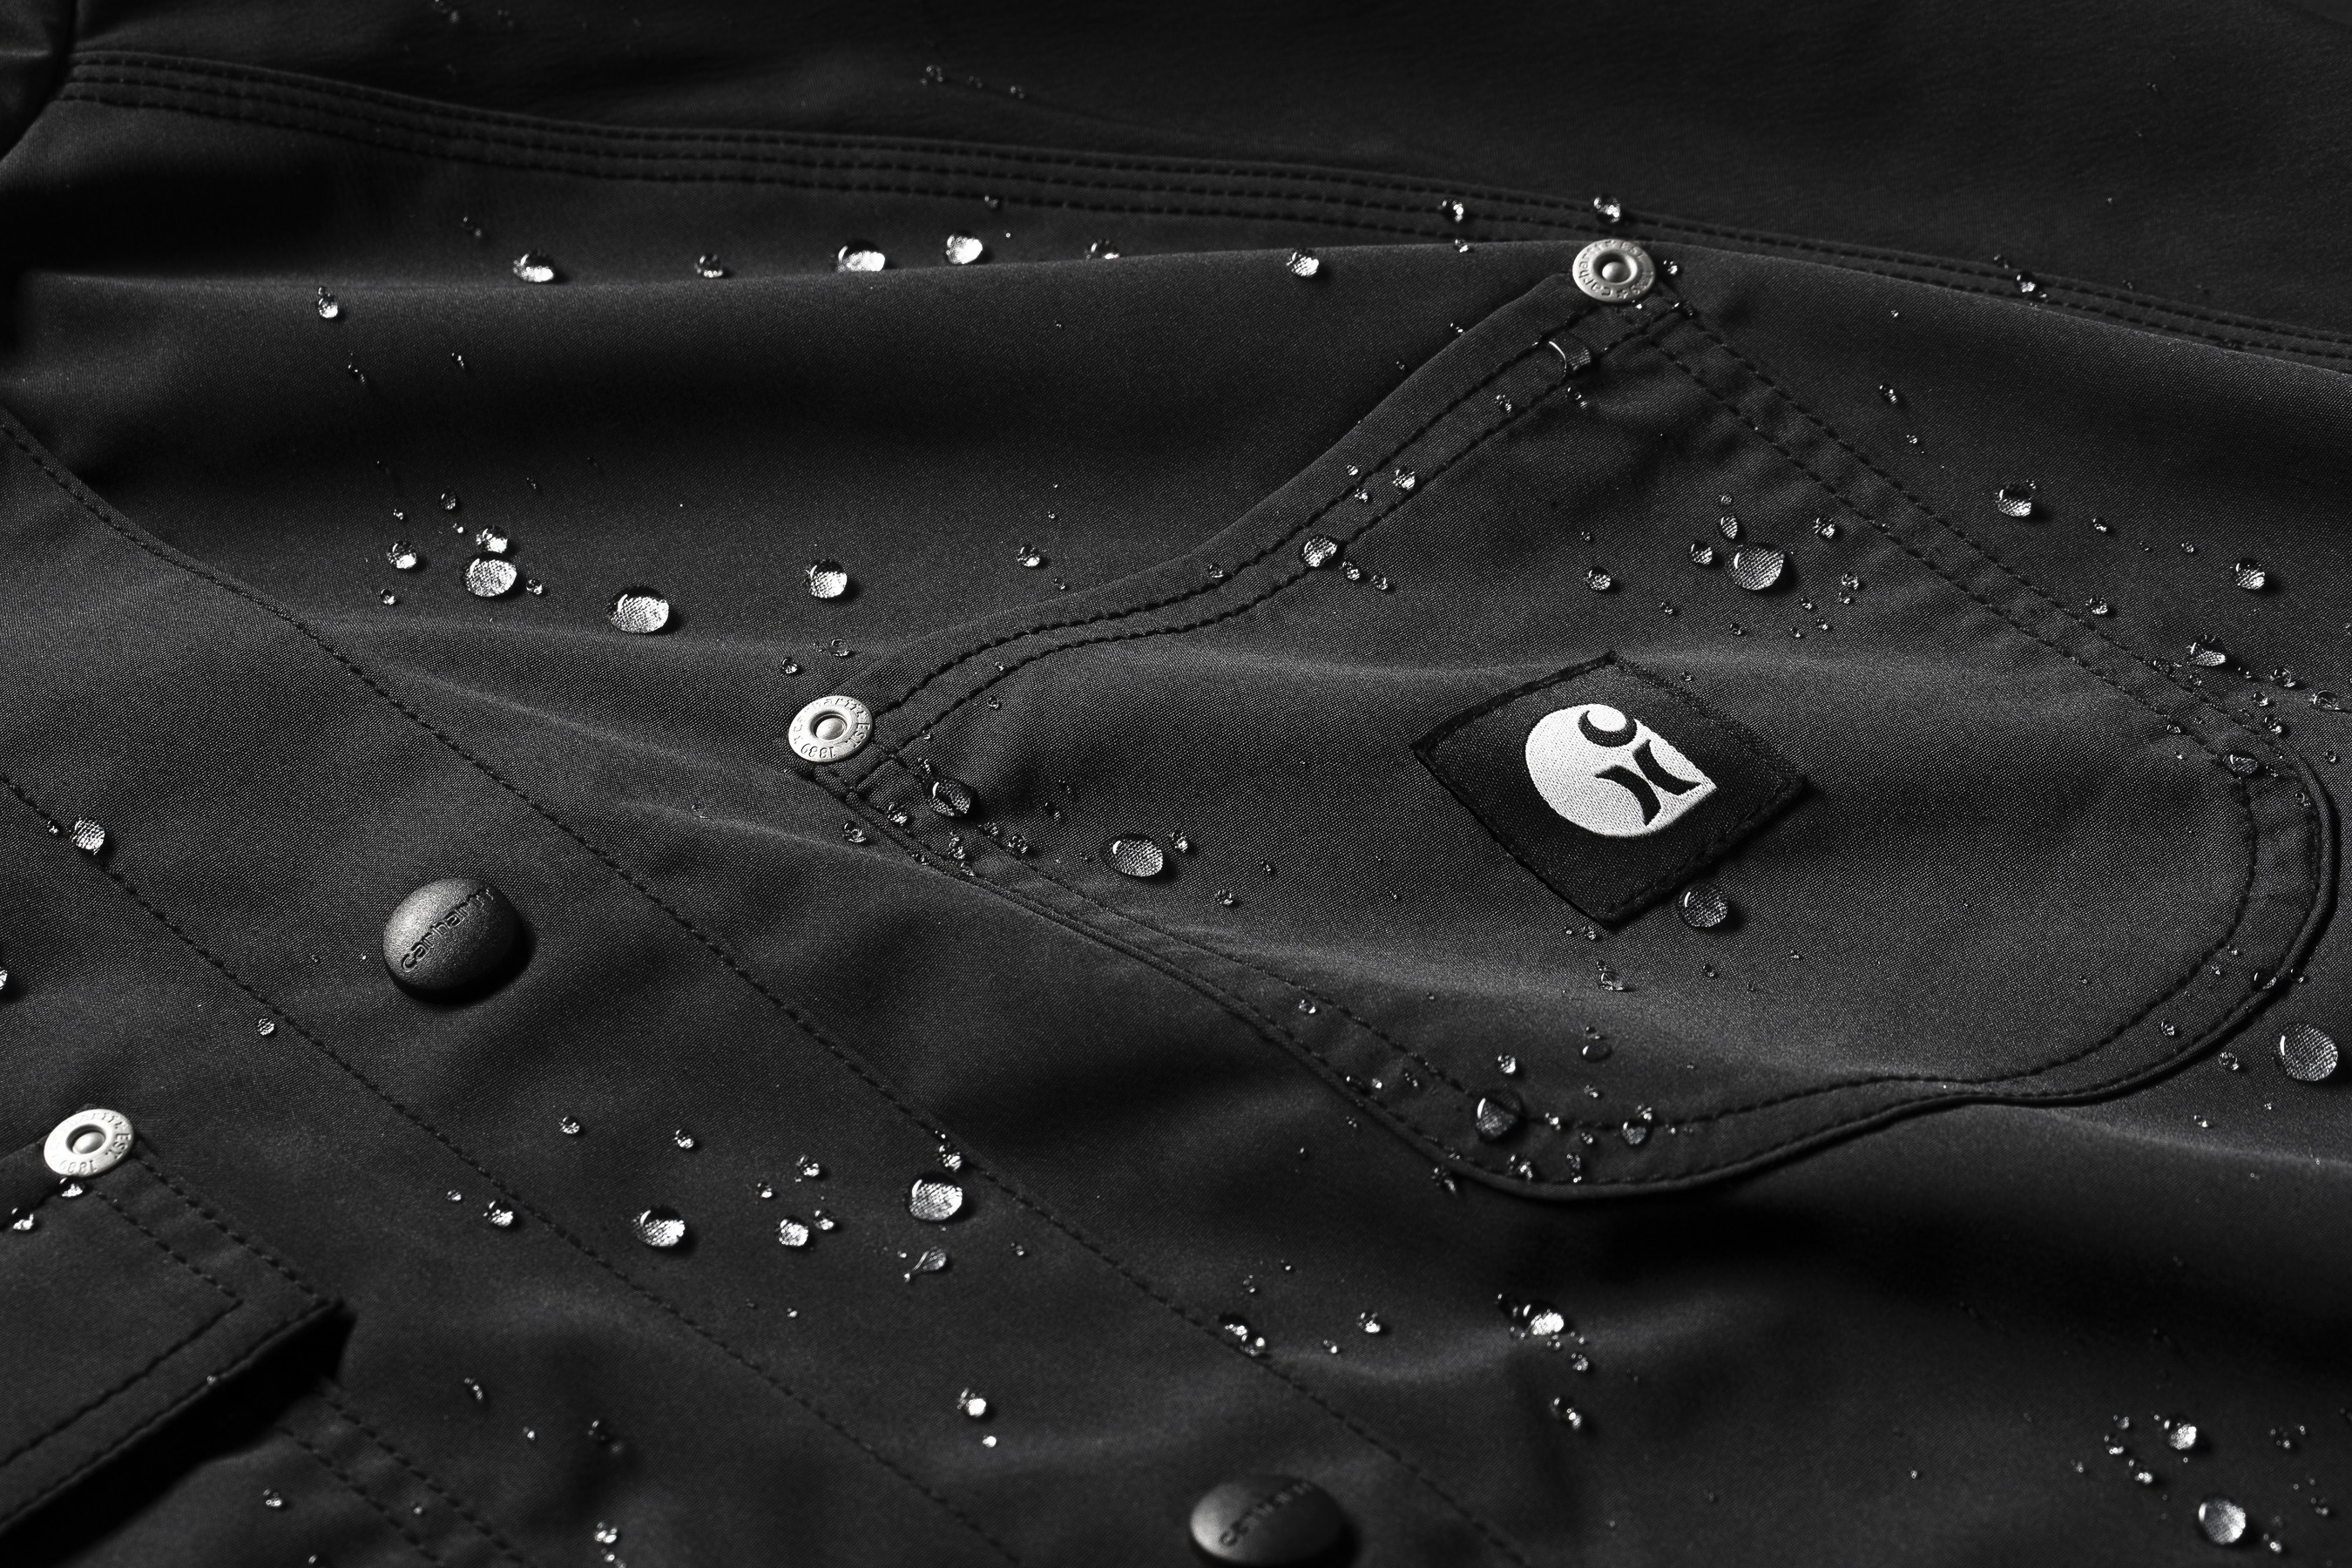 Carhartt, Hurley Launch Product Collaboration Designed To Outwork